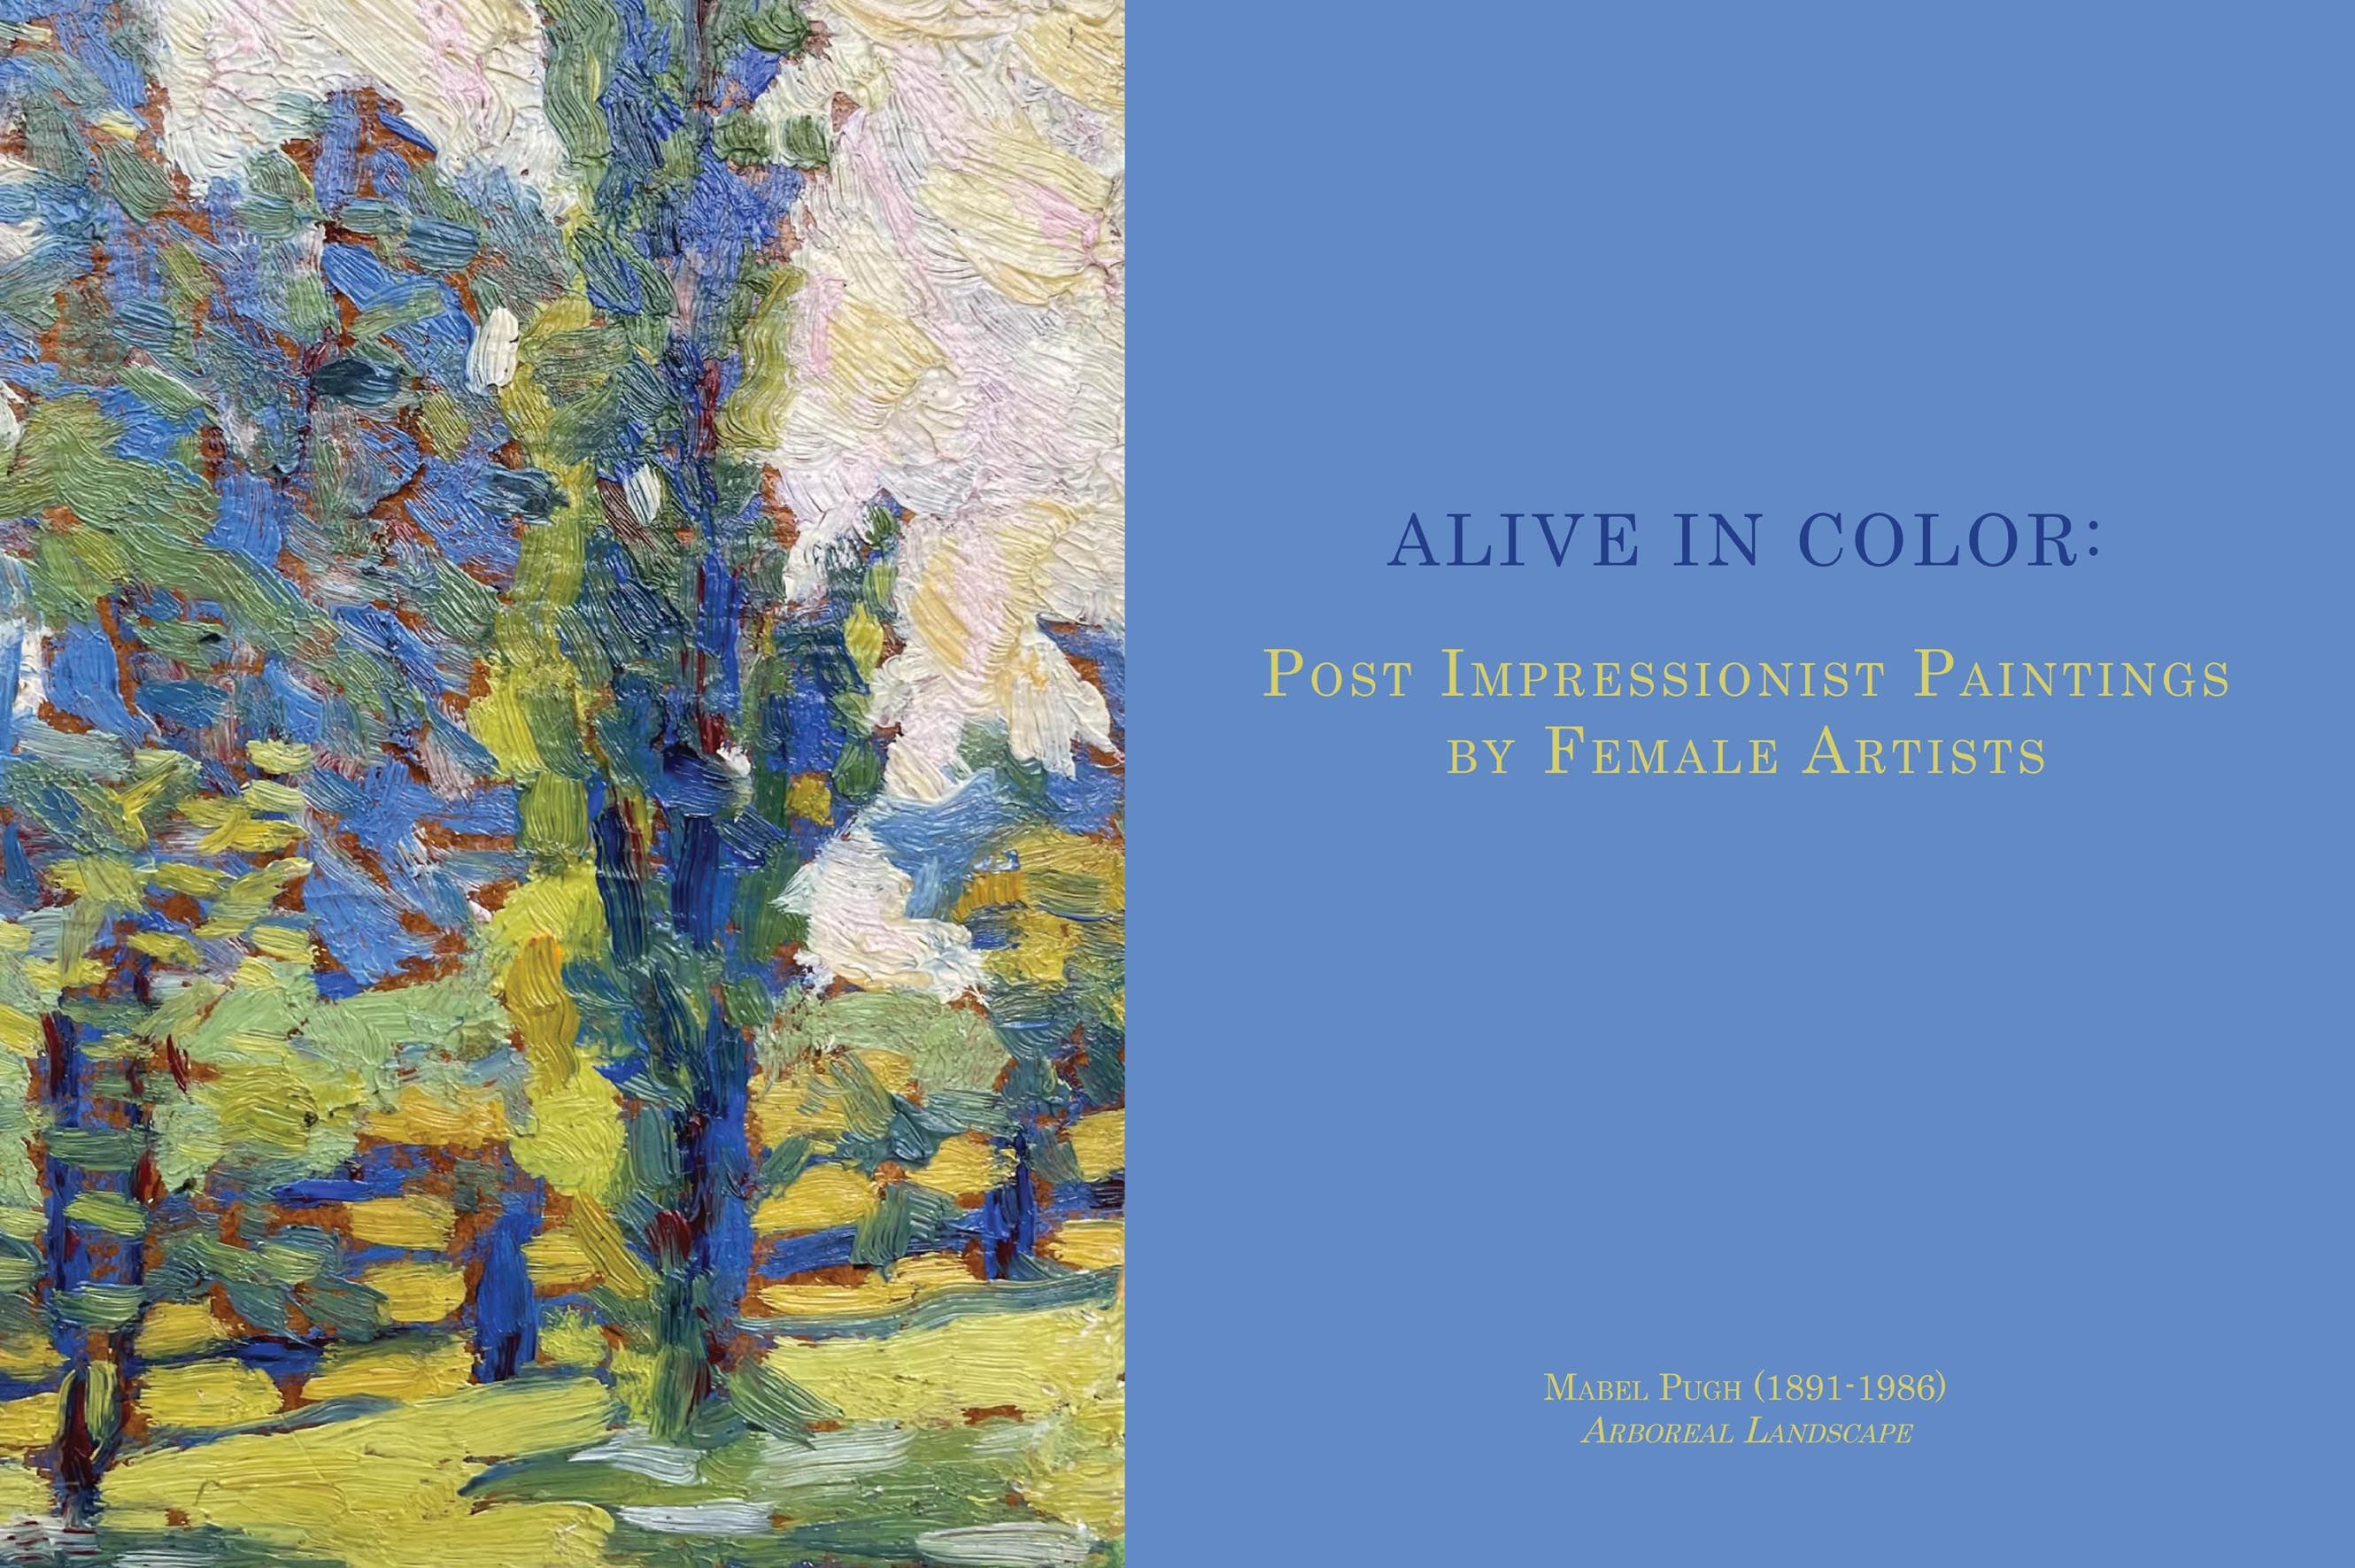 Alive in Color: Post Impressionist Paintings by Female Artists